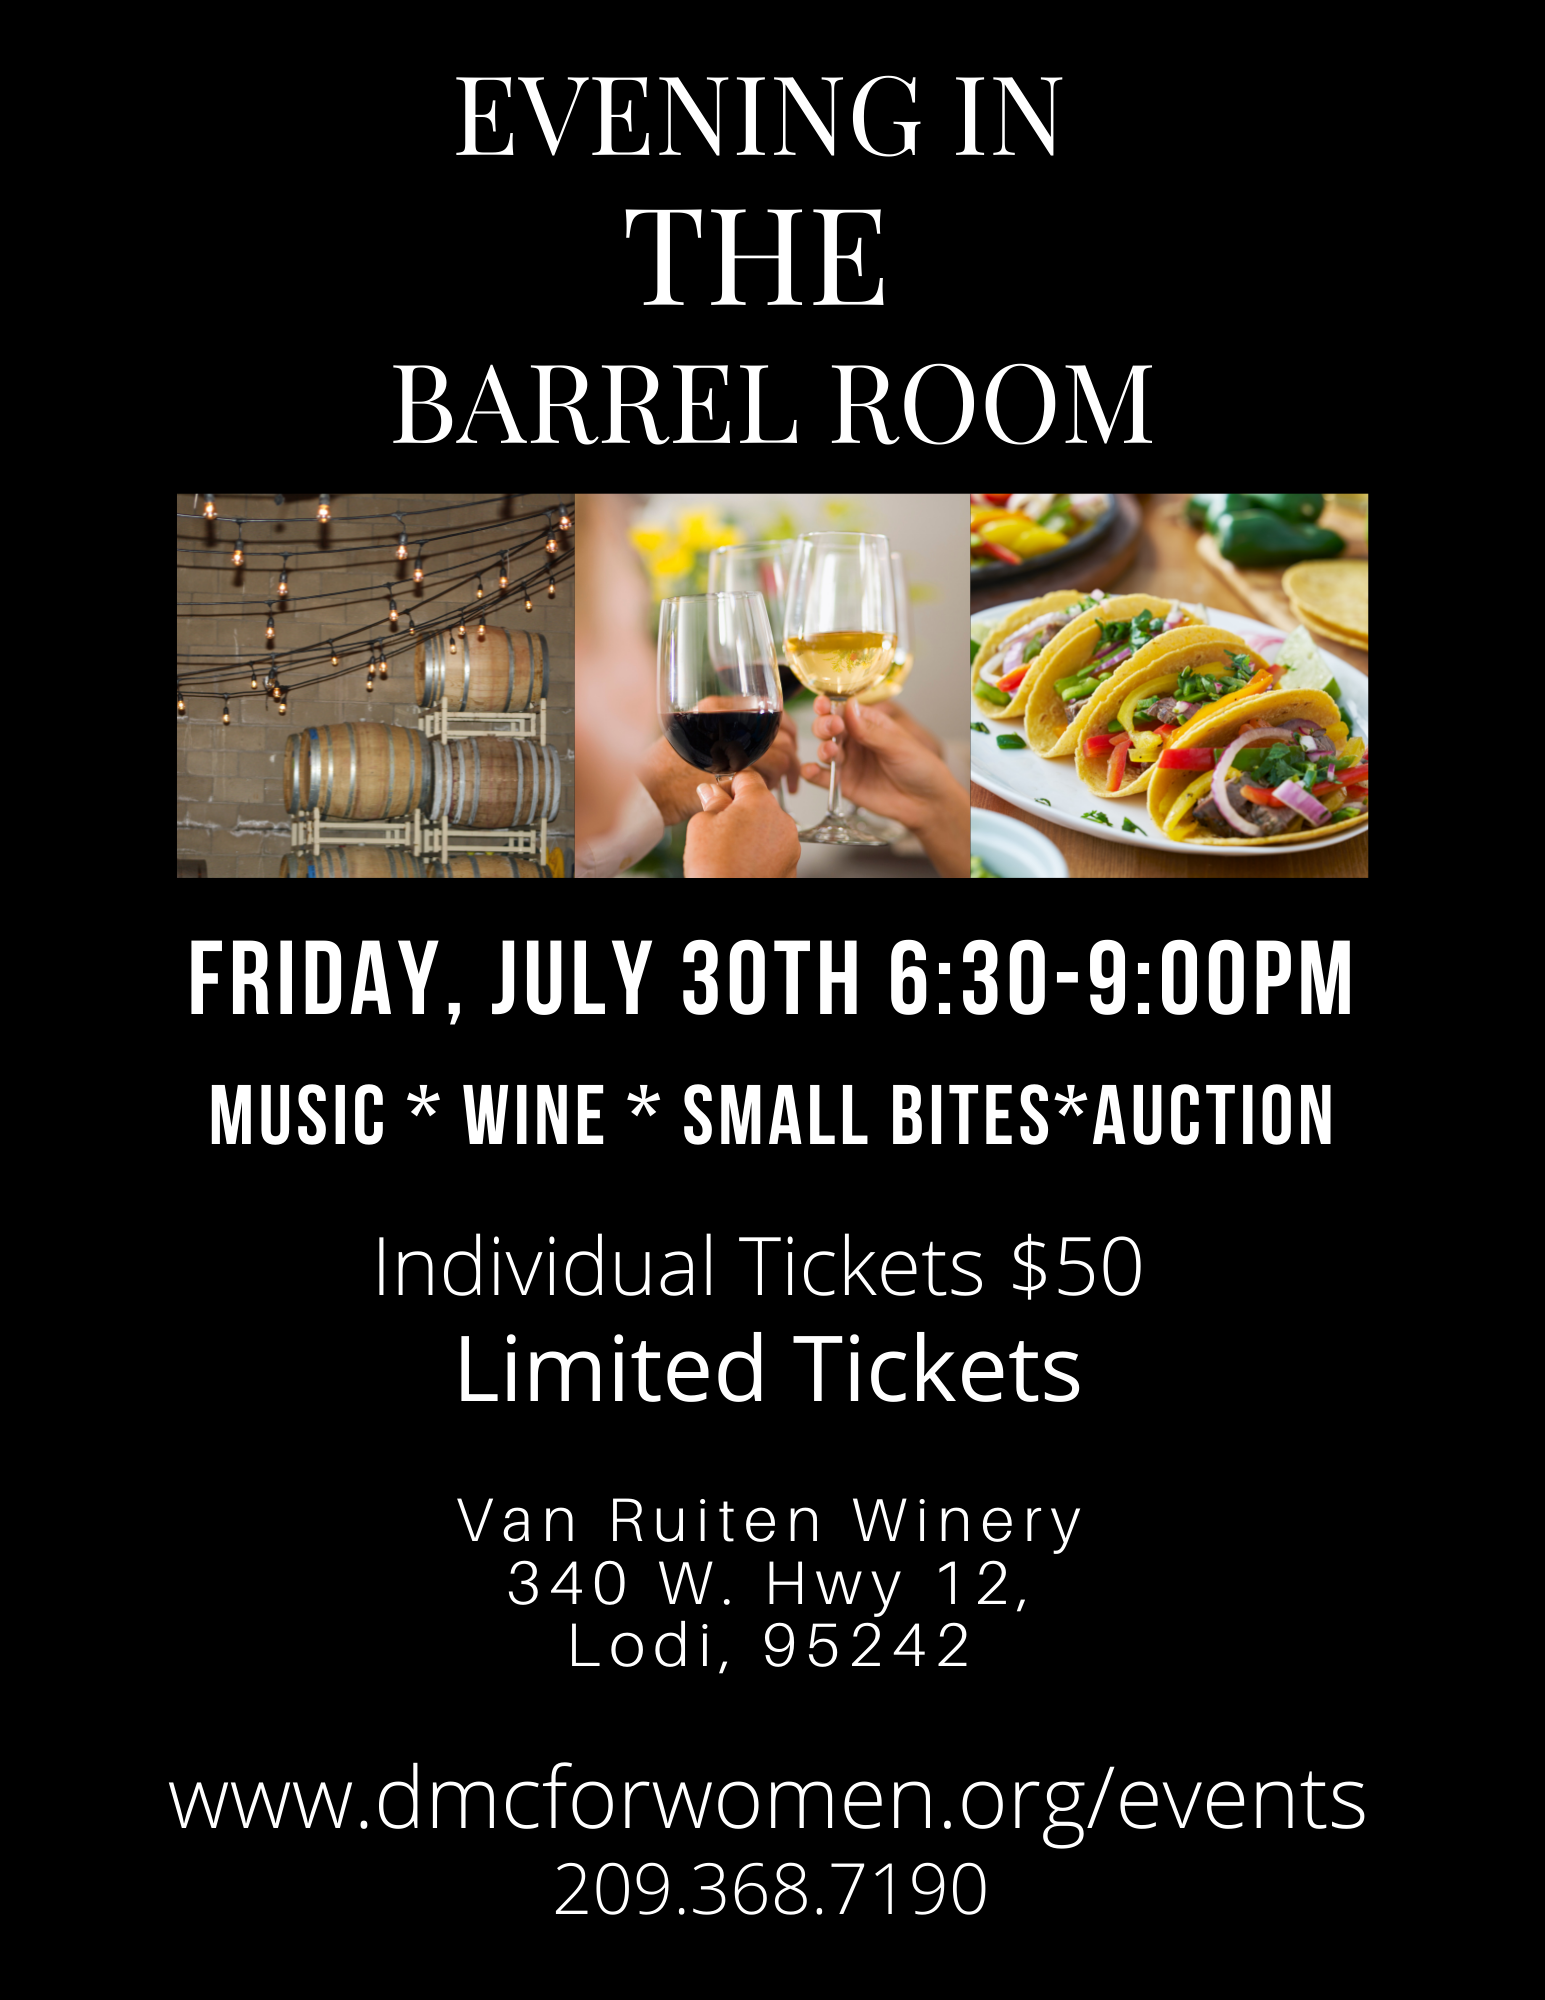 Evening in the Barrel Room flyer: fundraiser for Directions Medical Clinic - July 30, 2021, 6:30 - 9:00 pm